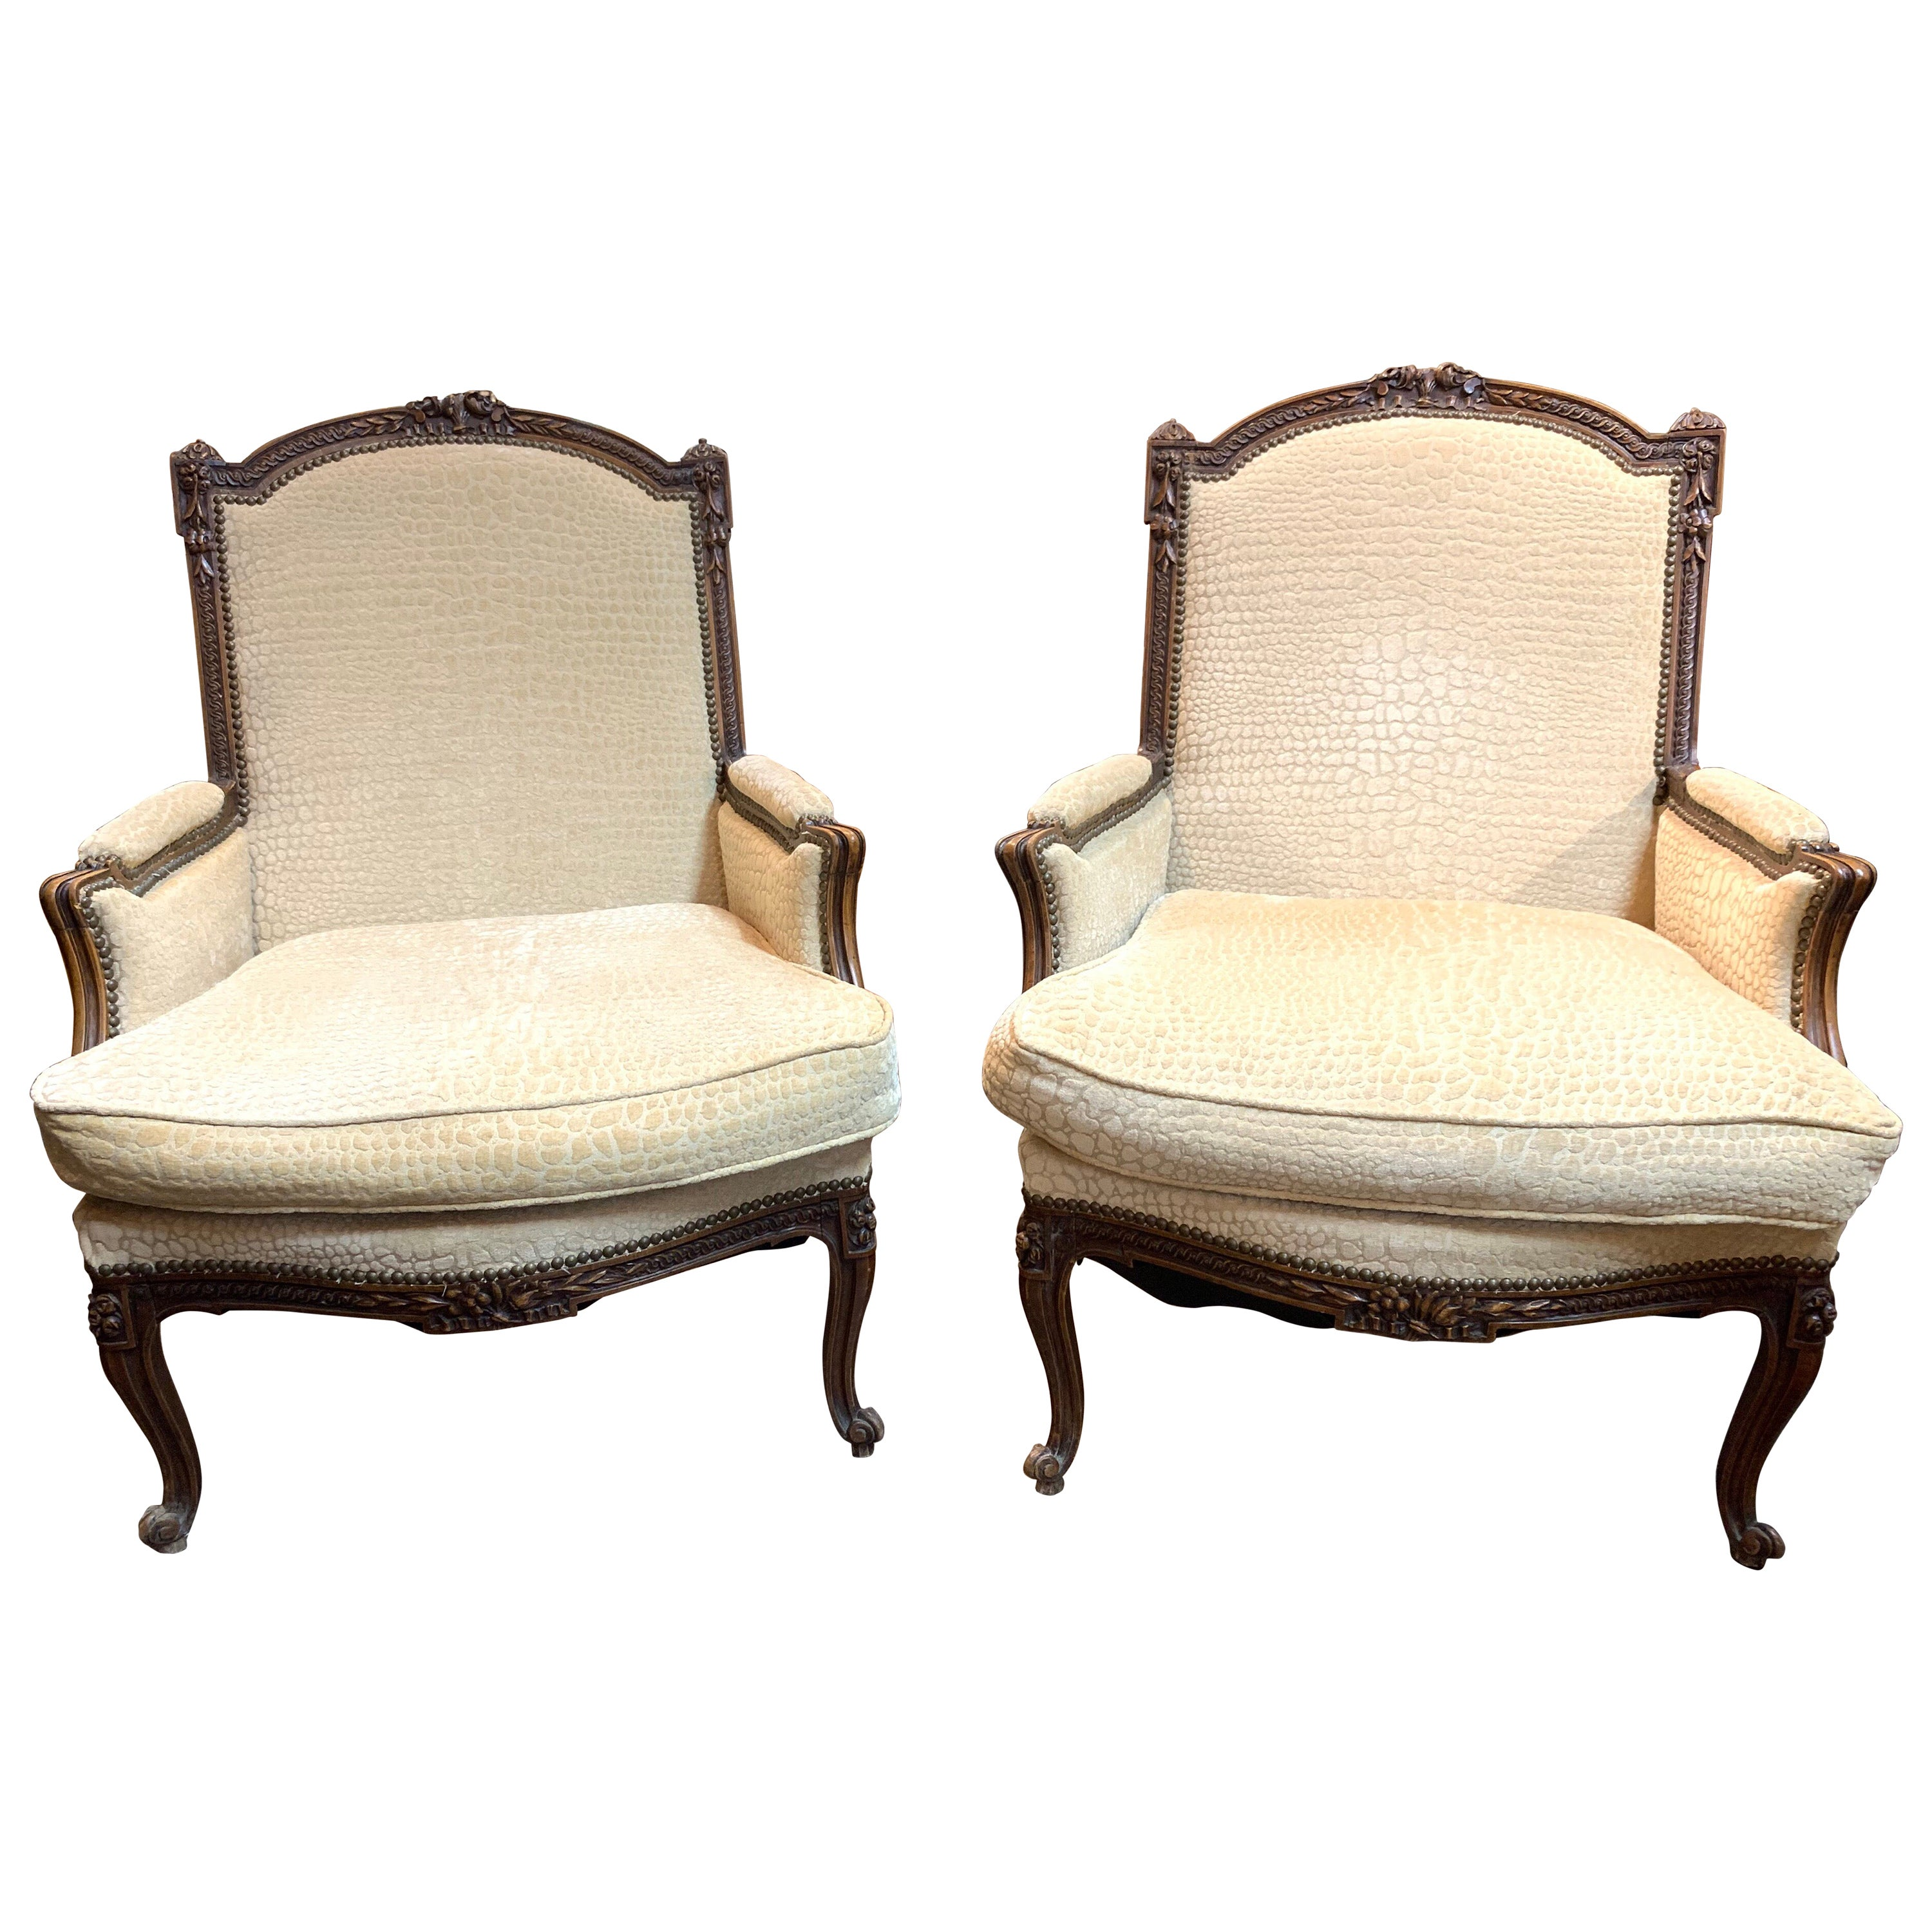 19th Century French Carved Walnut Upholstered Armchairs